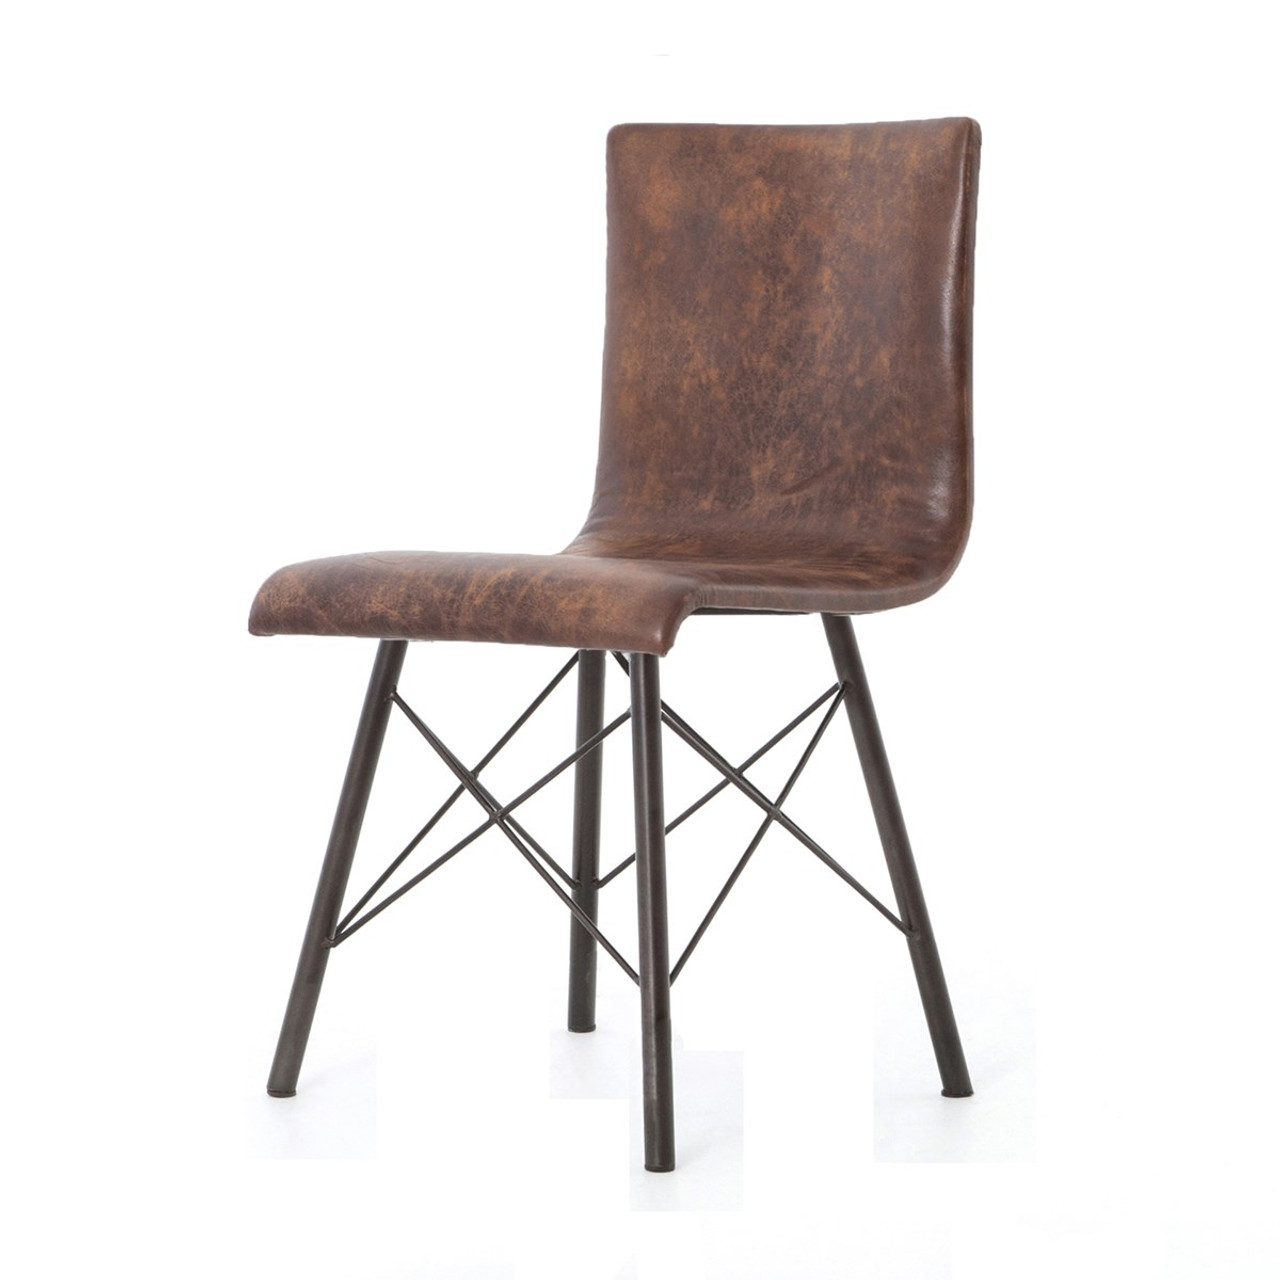 midcentury modern diaw distressed brown leather dining chair. diaw distressed brown leather dining chair  zin home